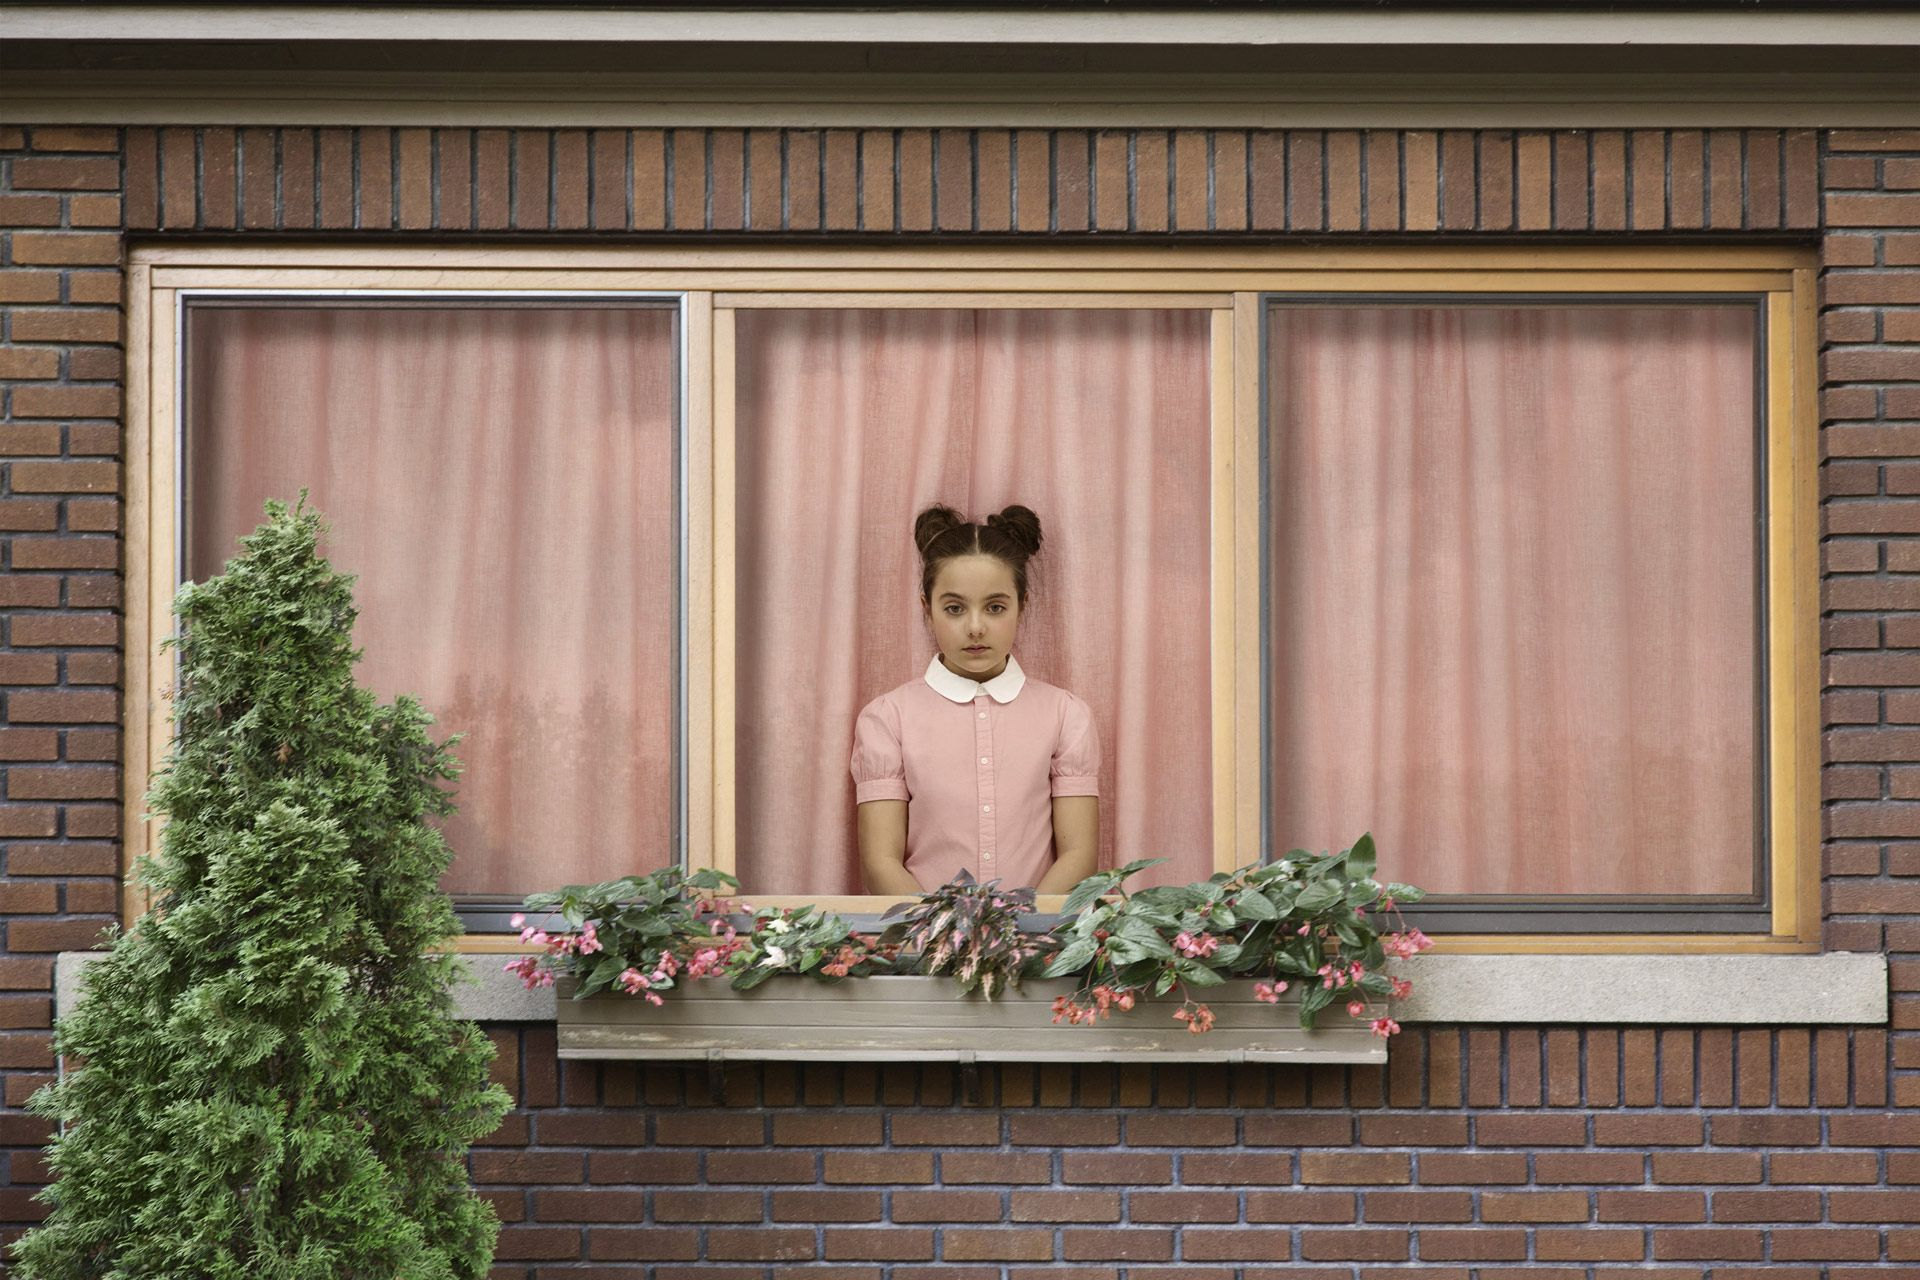 young girl dressed in pink inside house looking sadly out the window by Simon Duhamel for In Between